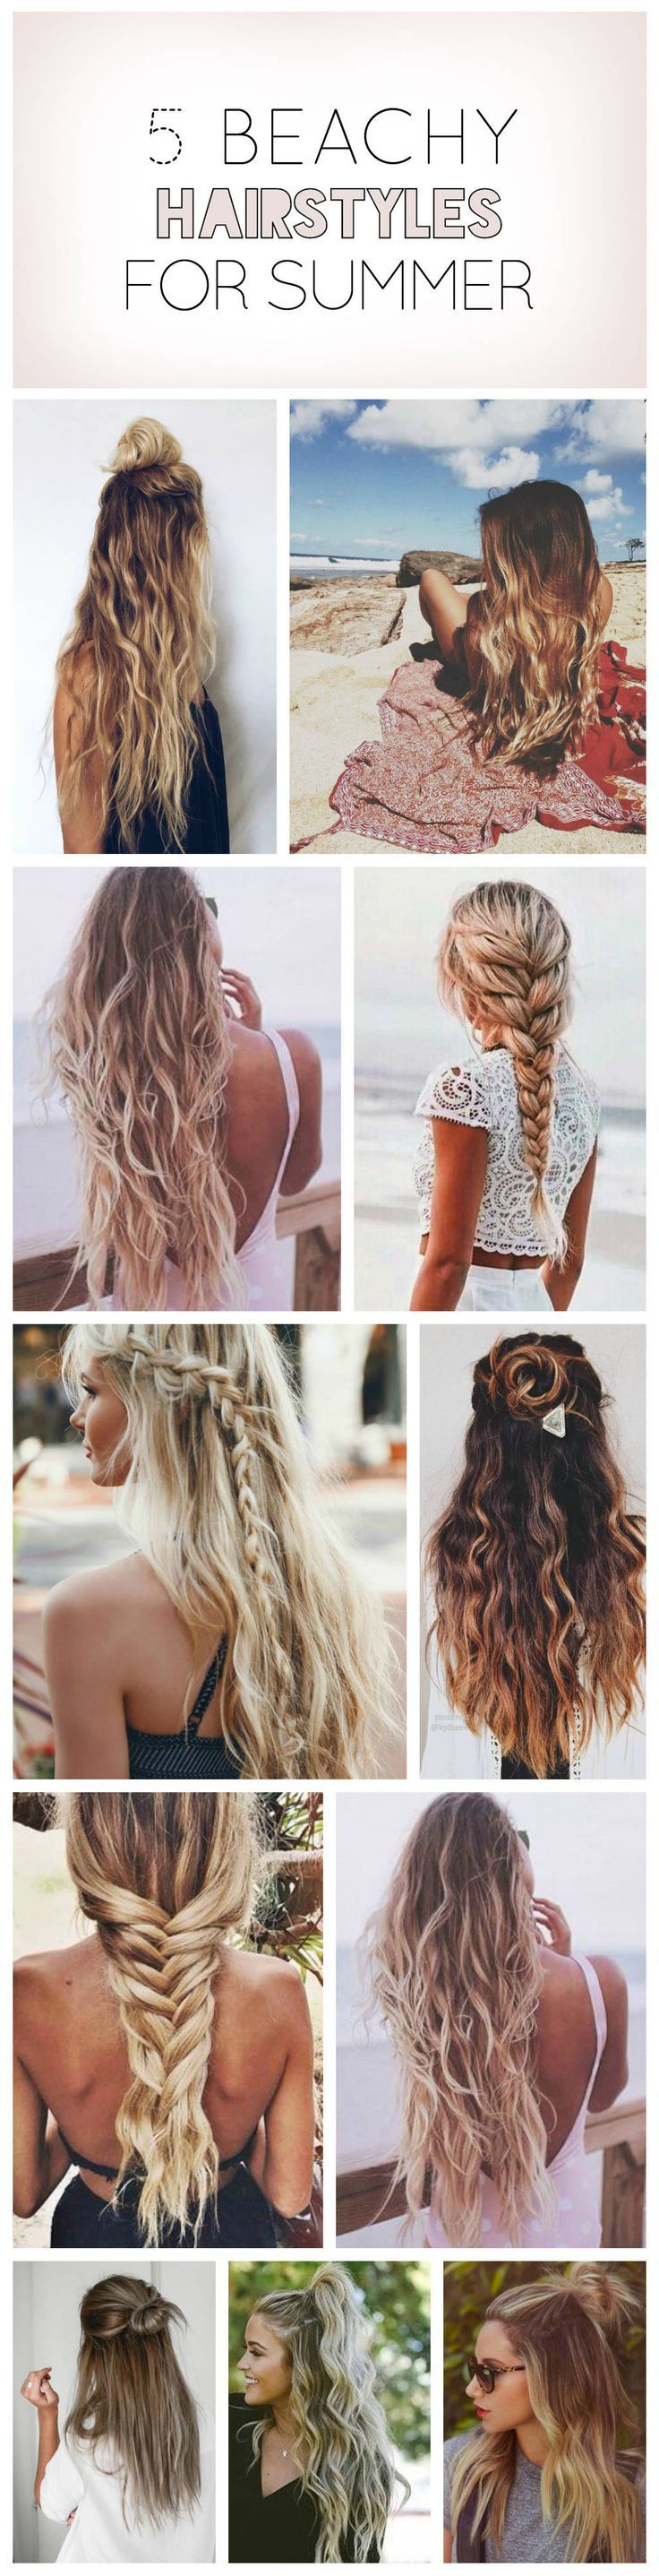 beachy hairstyles for summer easy summer hairstyles summer and